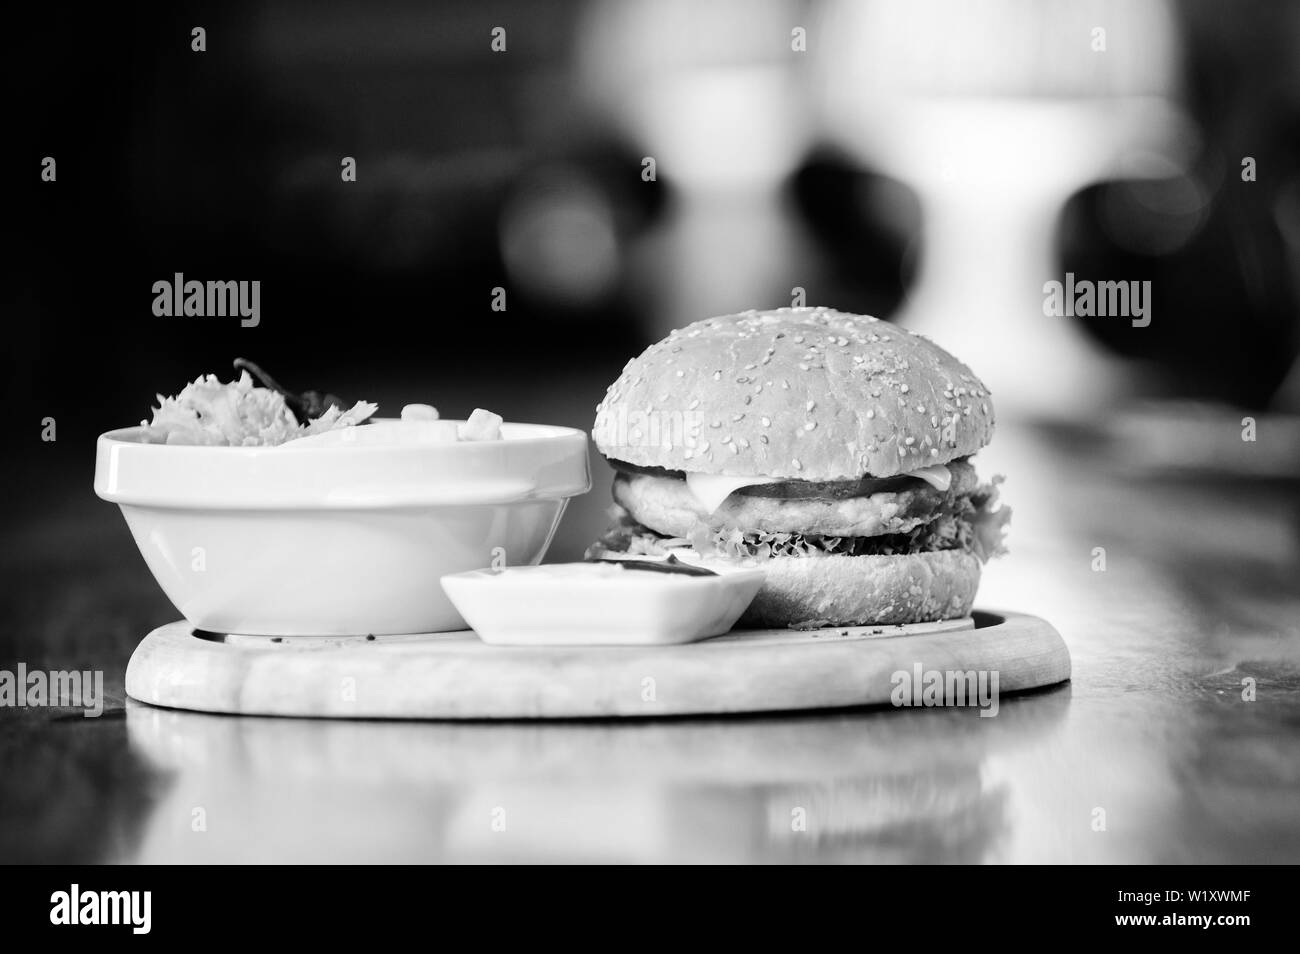 Burger and fries black and white stock photos images alamy